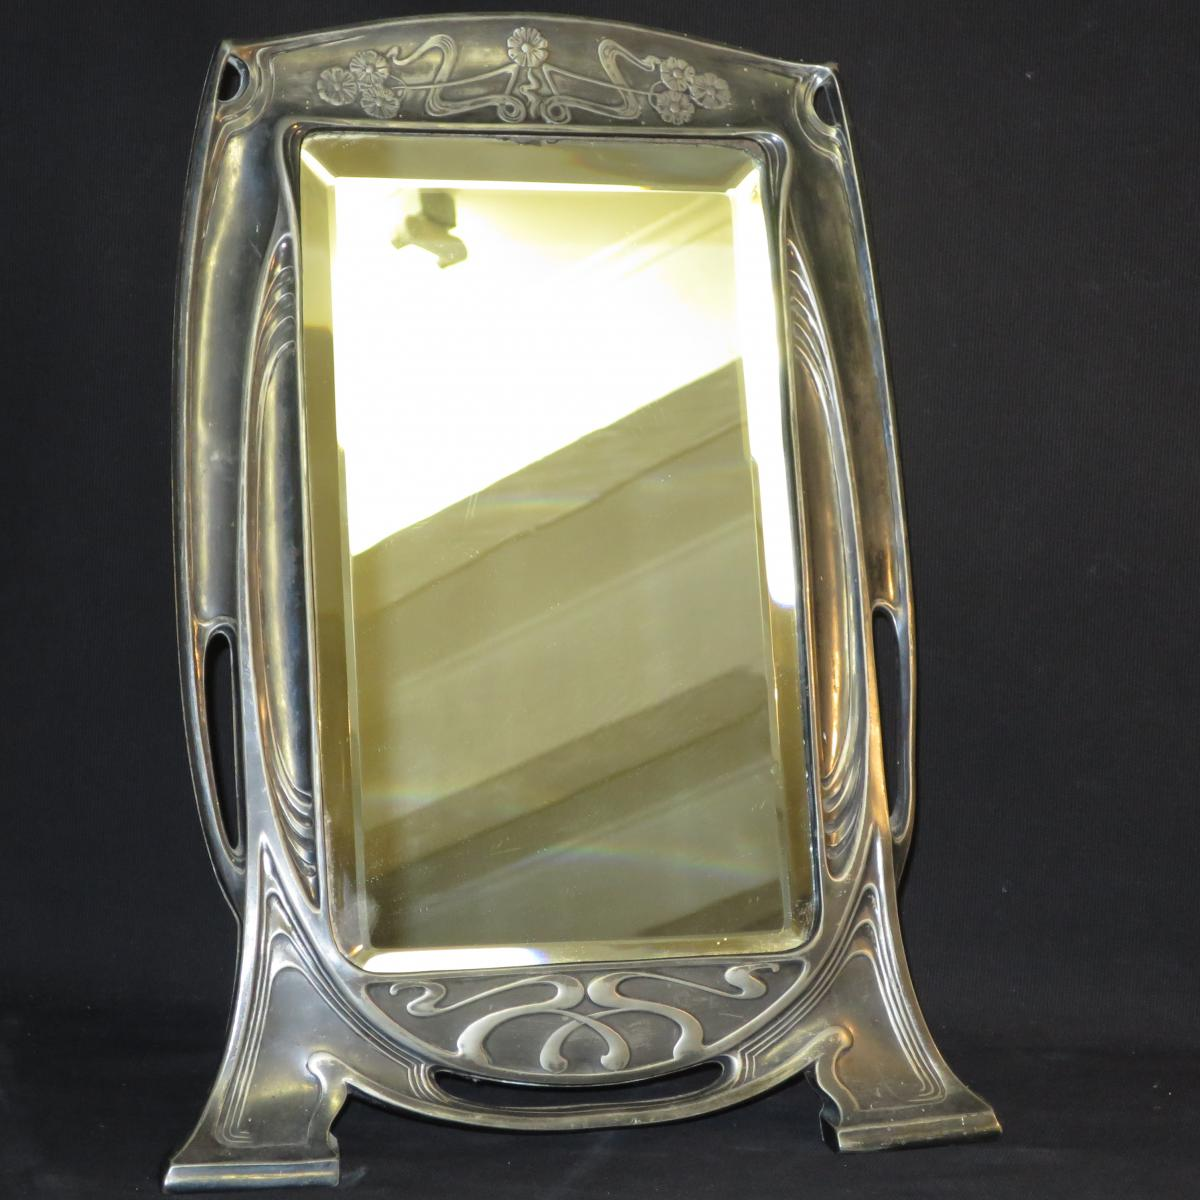 Grand miroir de toilette art nouveau poser en metal for Grand miroir metal